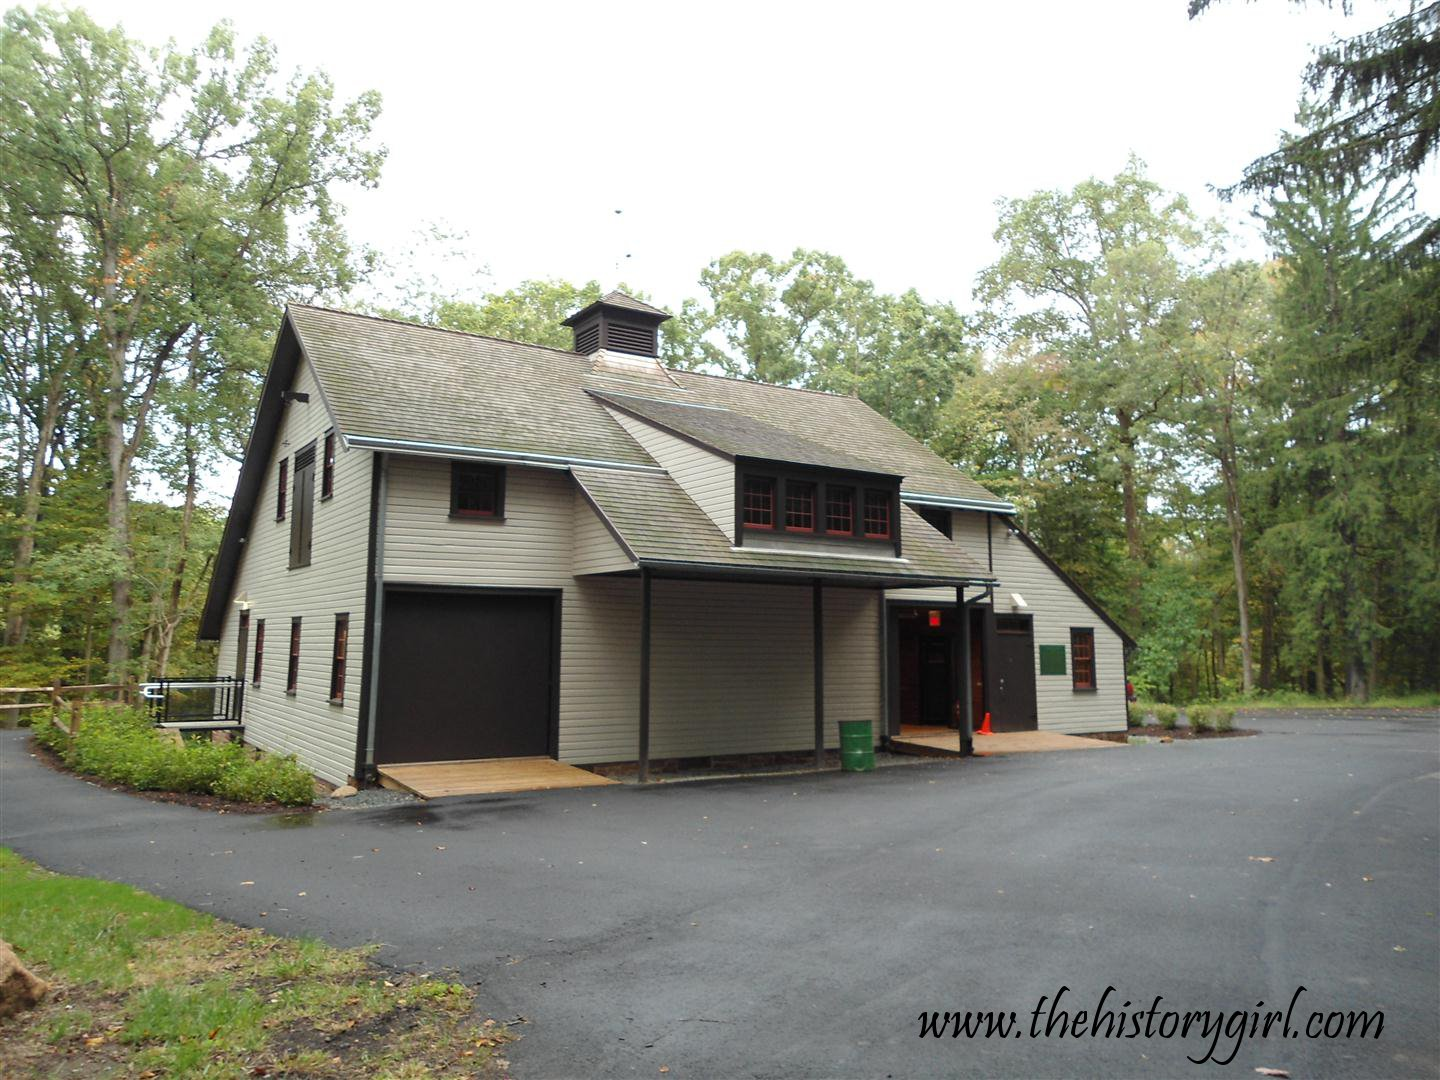 industry  u0026 leisure in the watchung reservation  the